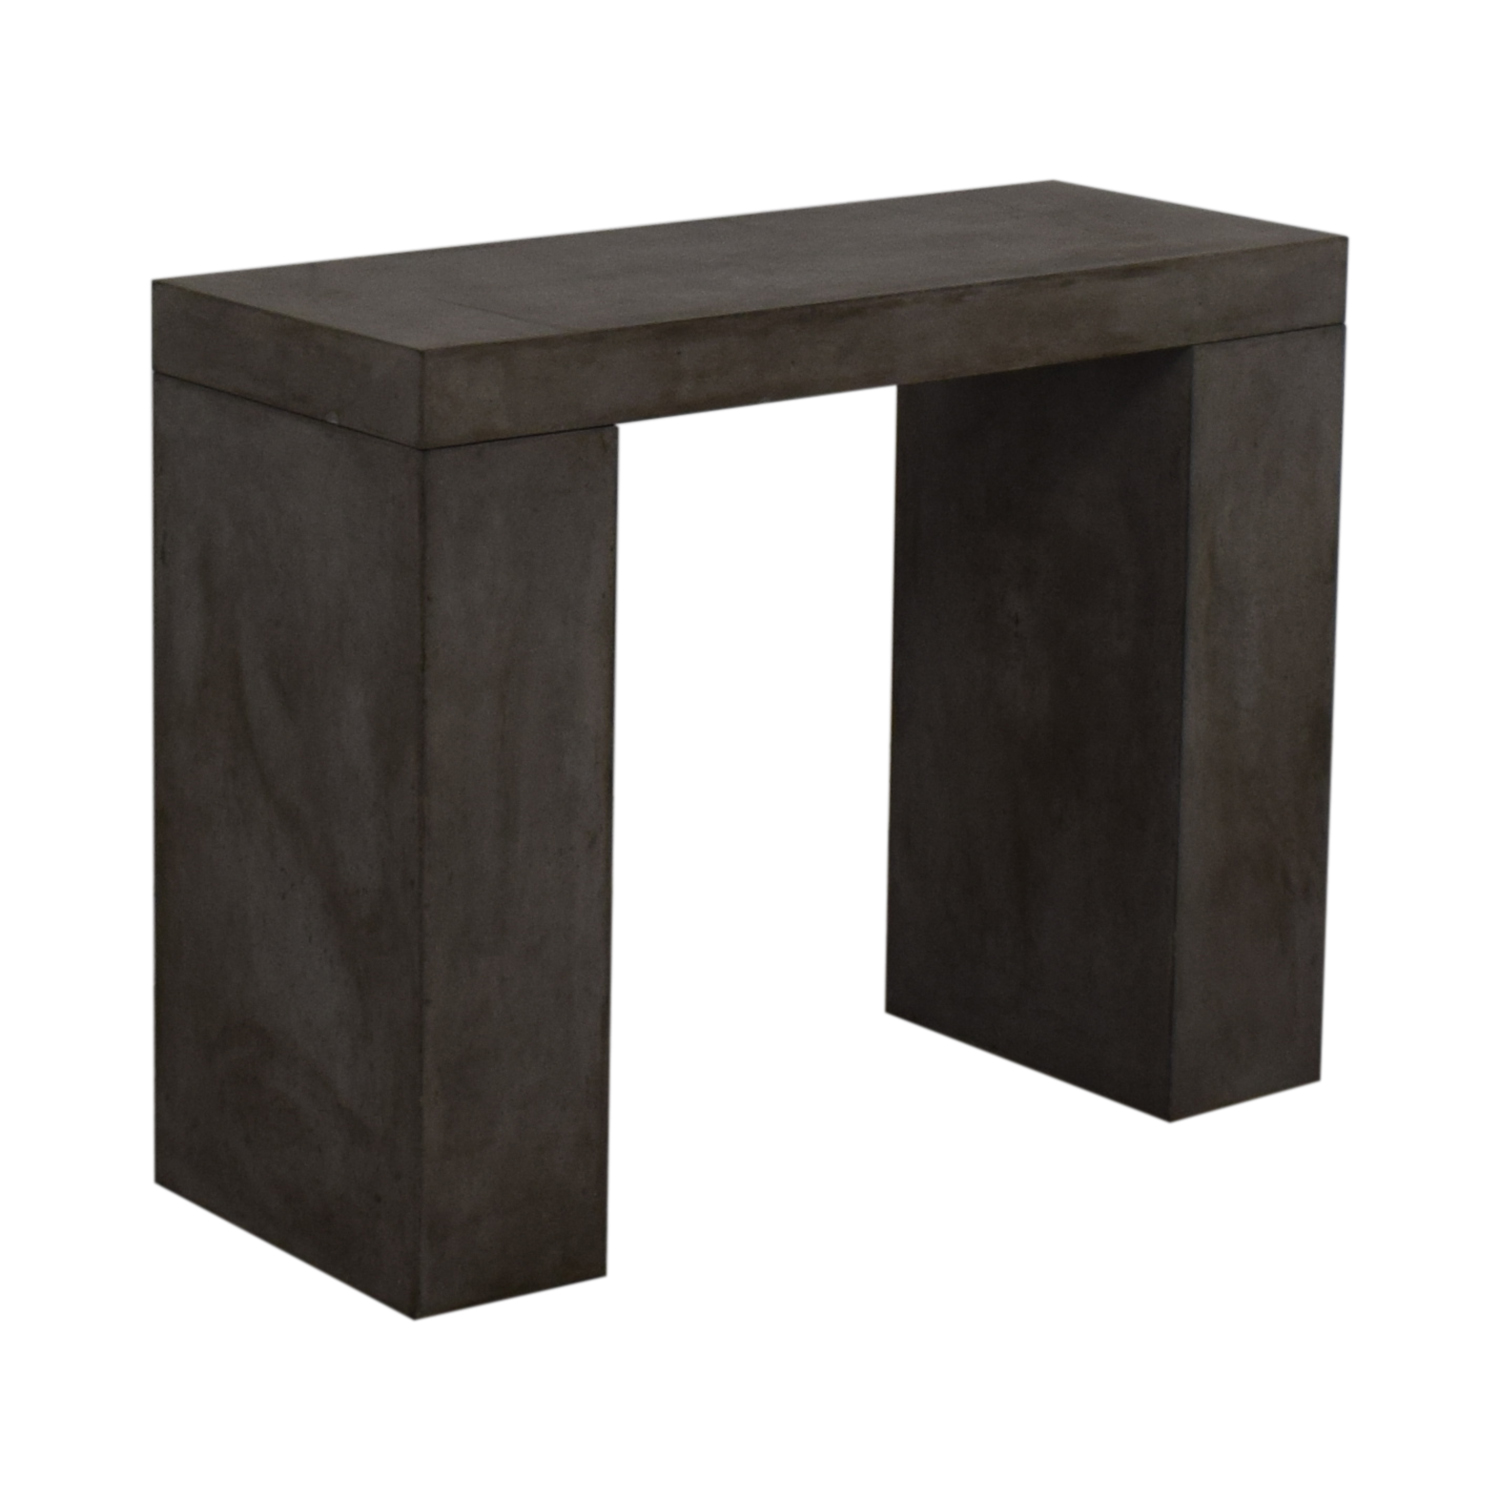 Rustic Concrete Console Tables